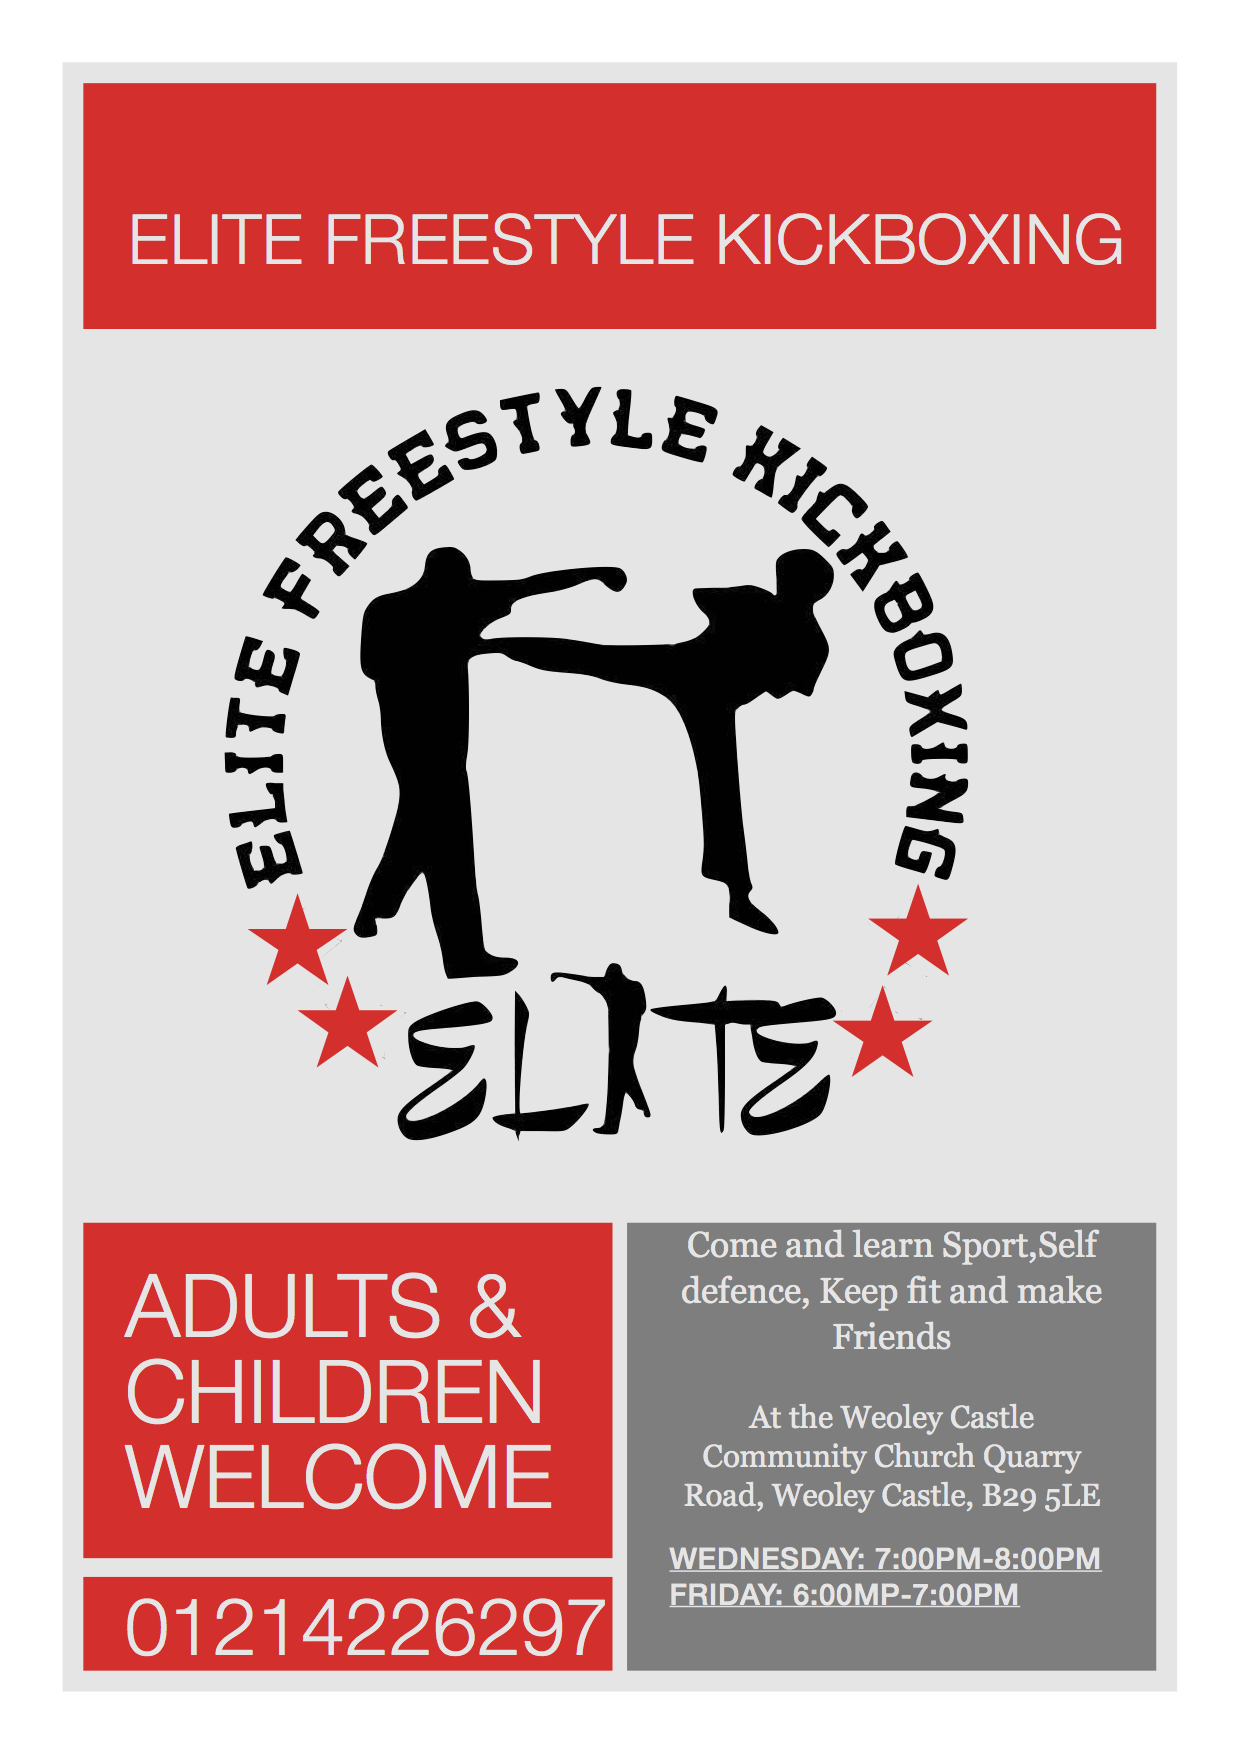 Elite Freestyle Kick Boxing Poster new.jpg